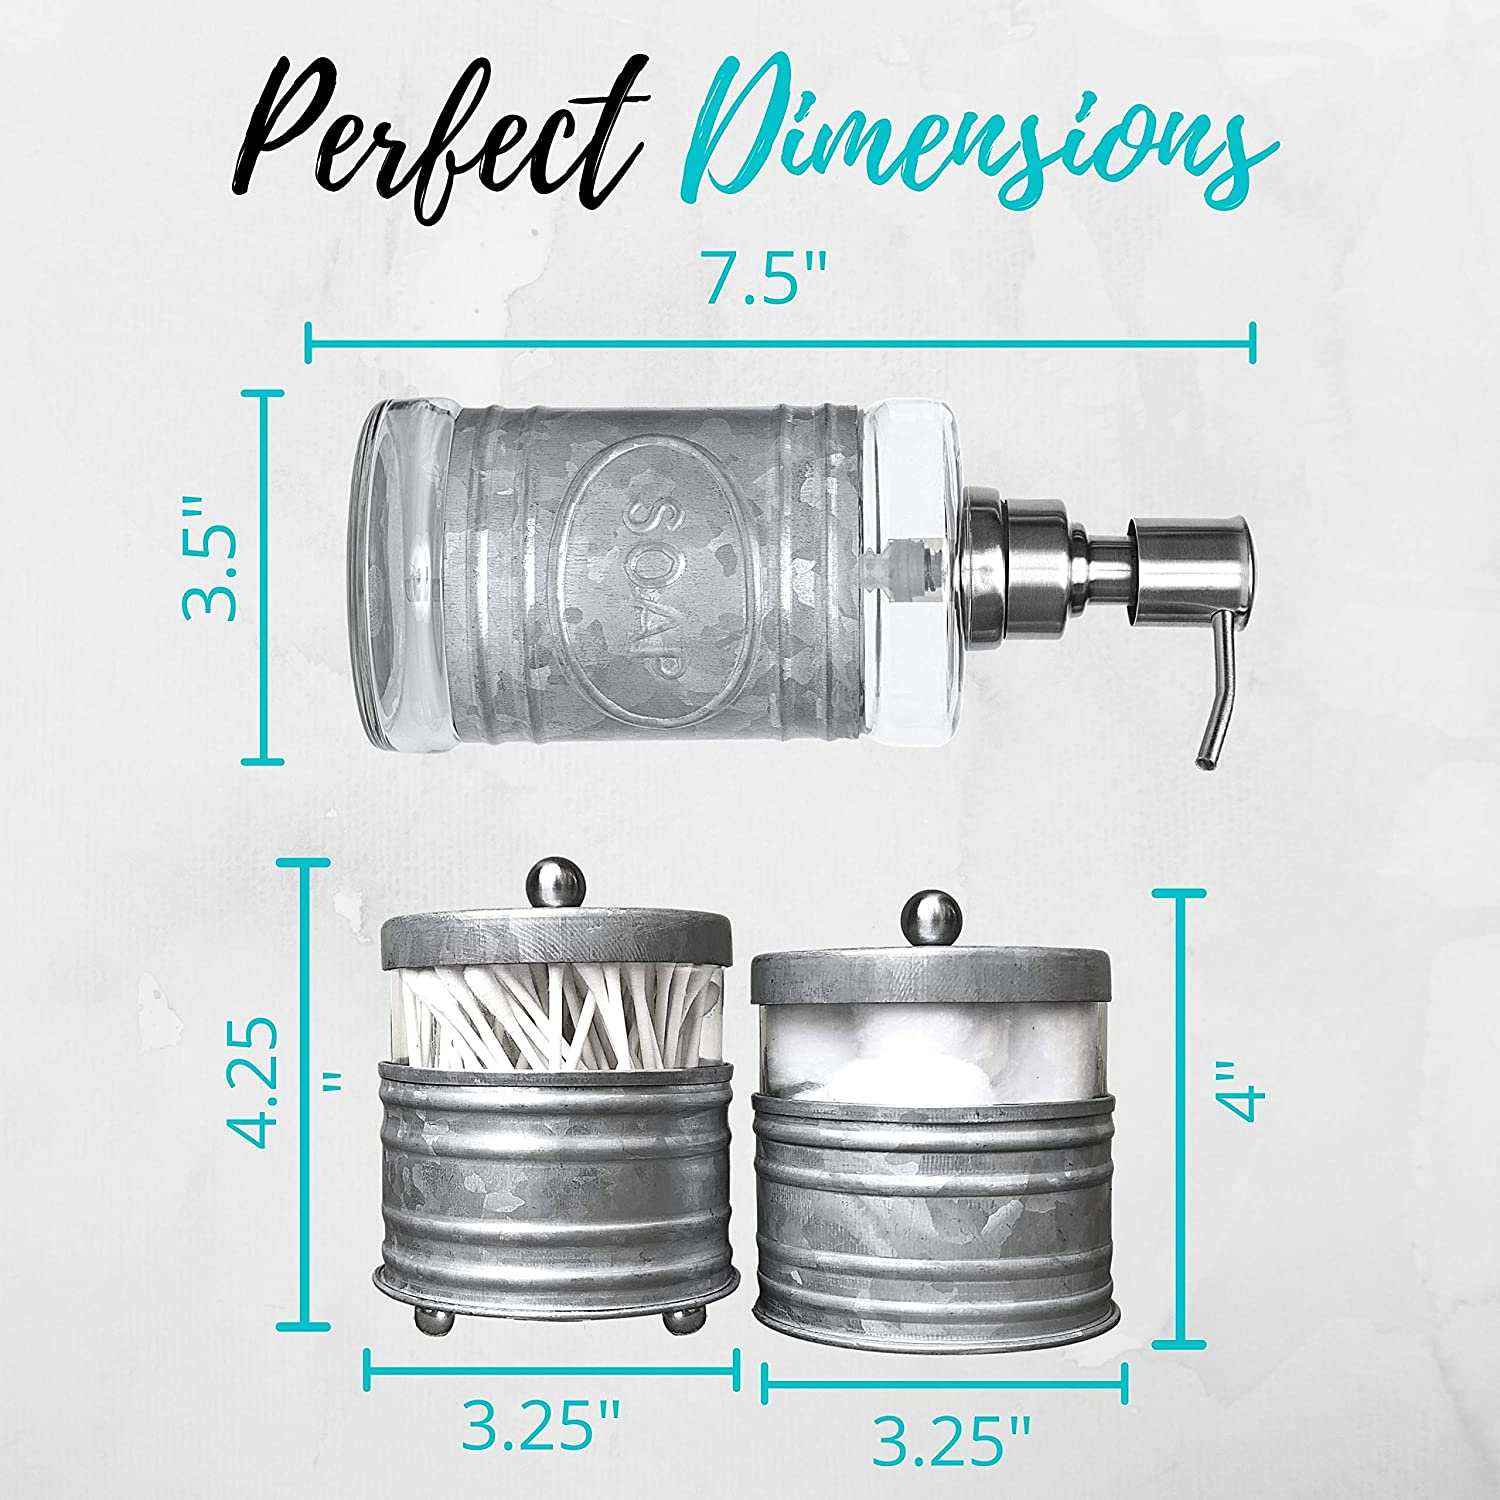 Buy Autumn Alley Adorable 3 Piece Farmhouse Bathroom Accessory Set For Sink Vanity With Galvanized Soap Dispenser Cotton Ball Container With Lid Qtip Organizer Galvanized Farmhouse Bathroom Decor Online In Greece B08lcpqmv3